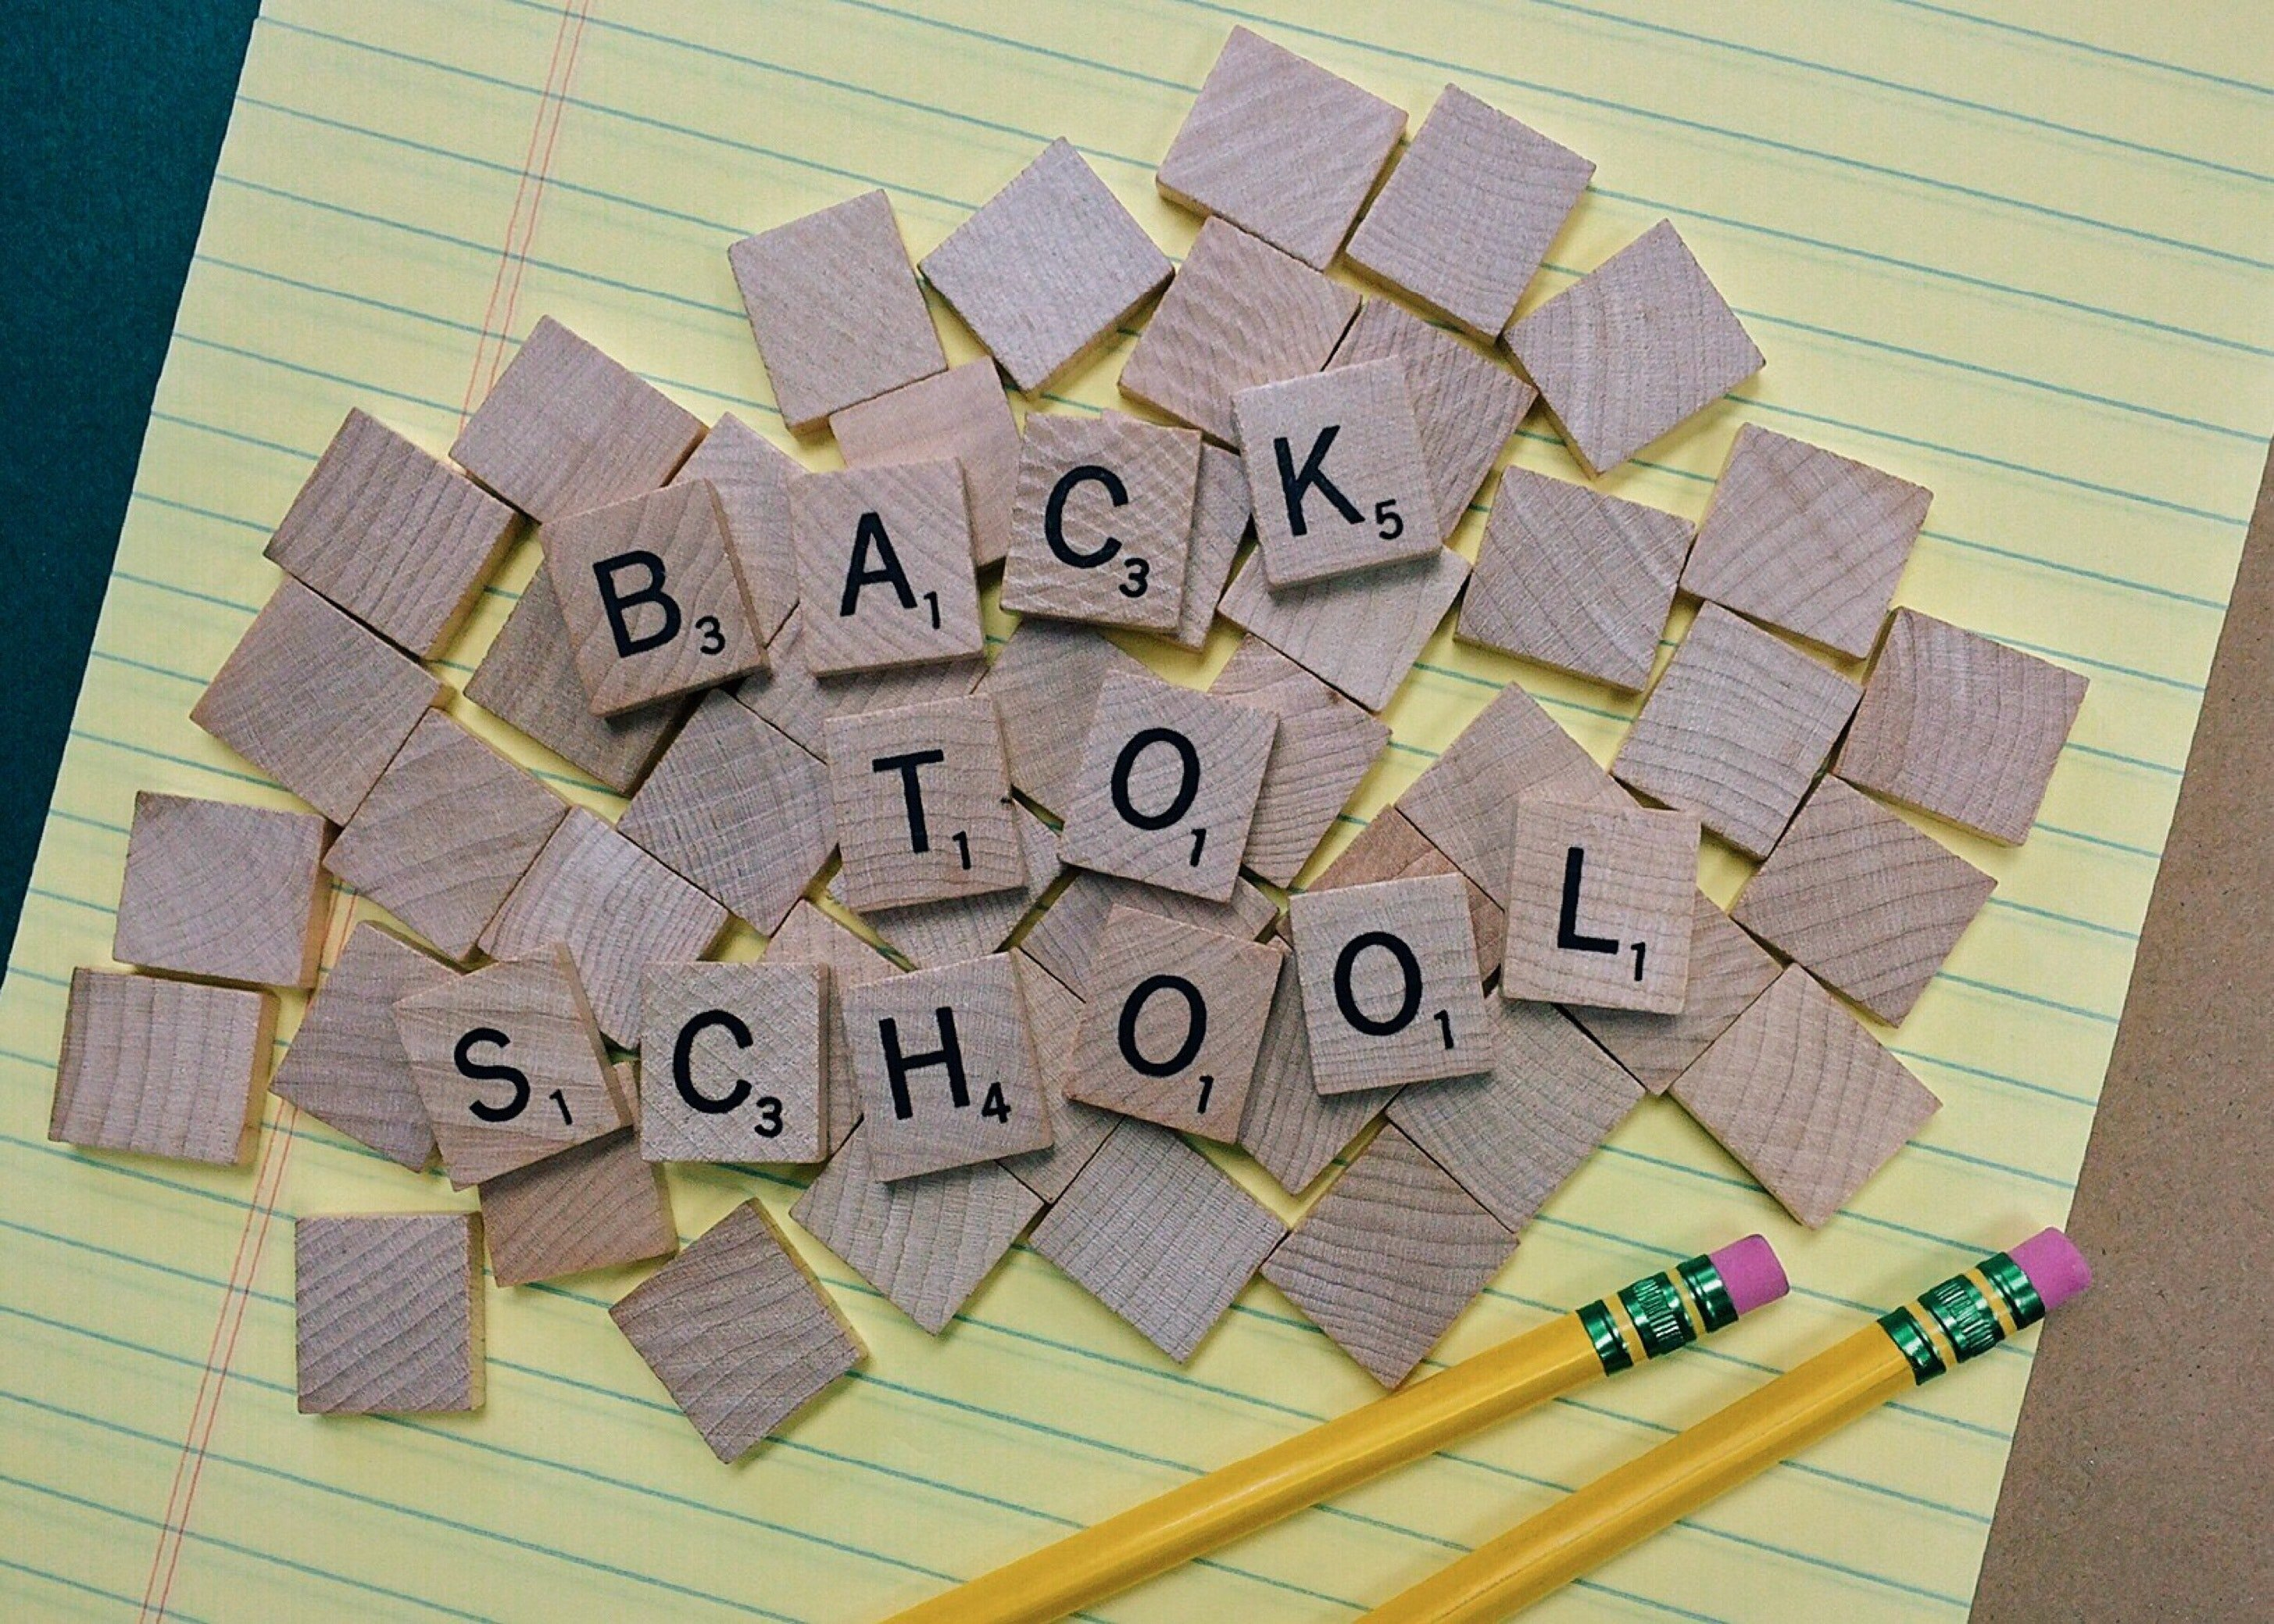 7 Quick Tips for Surviving the Back-to-School Rush